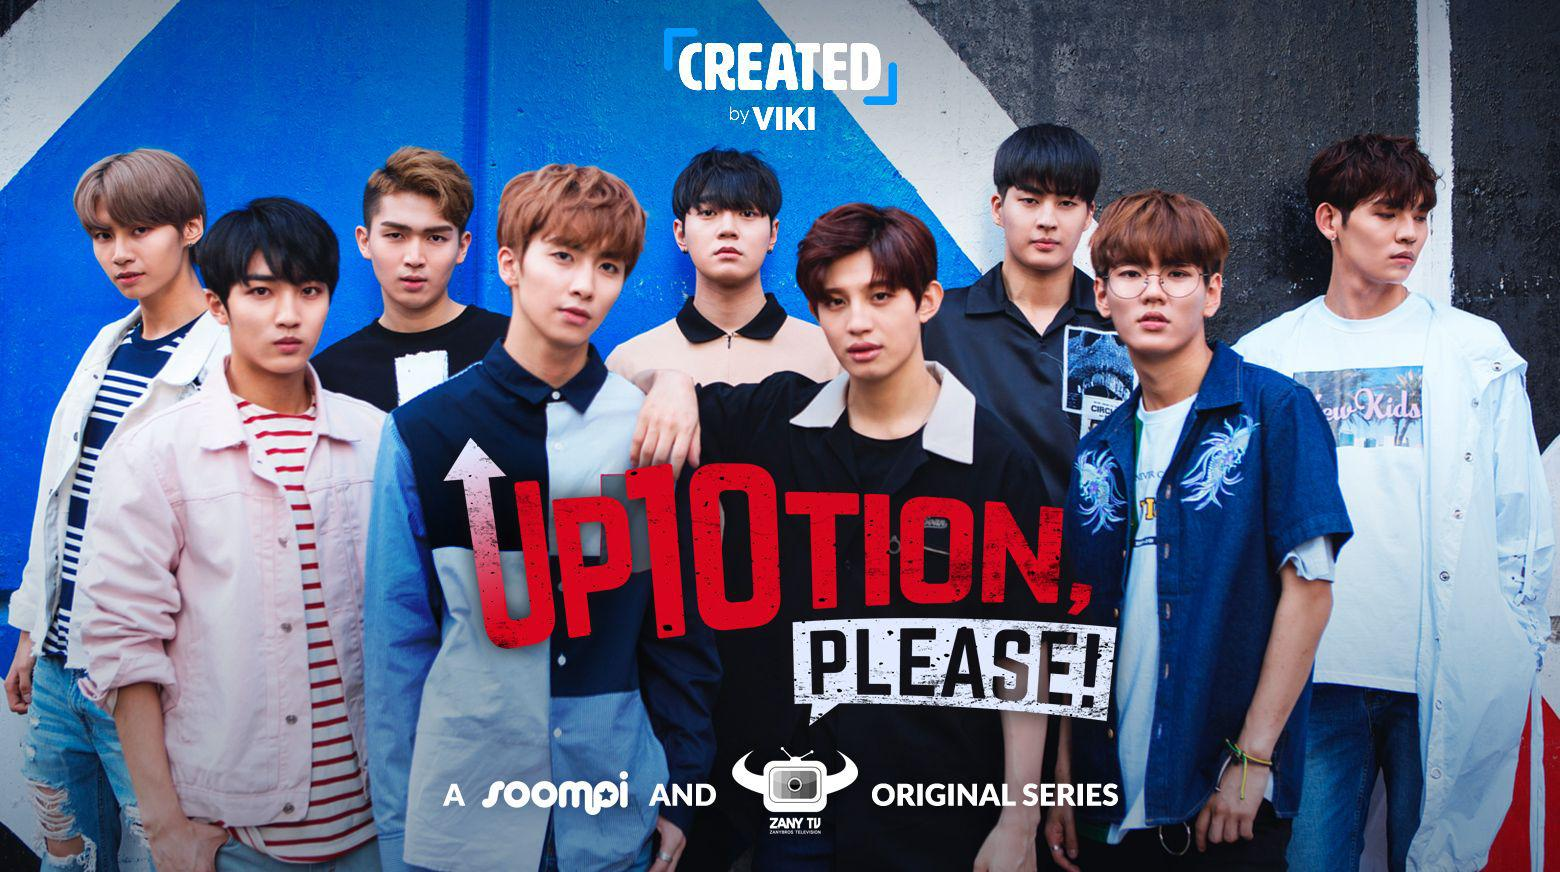 Up10tion, por favor